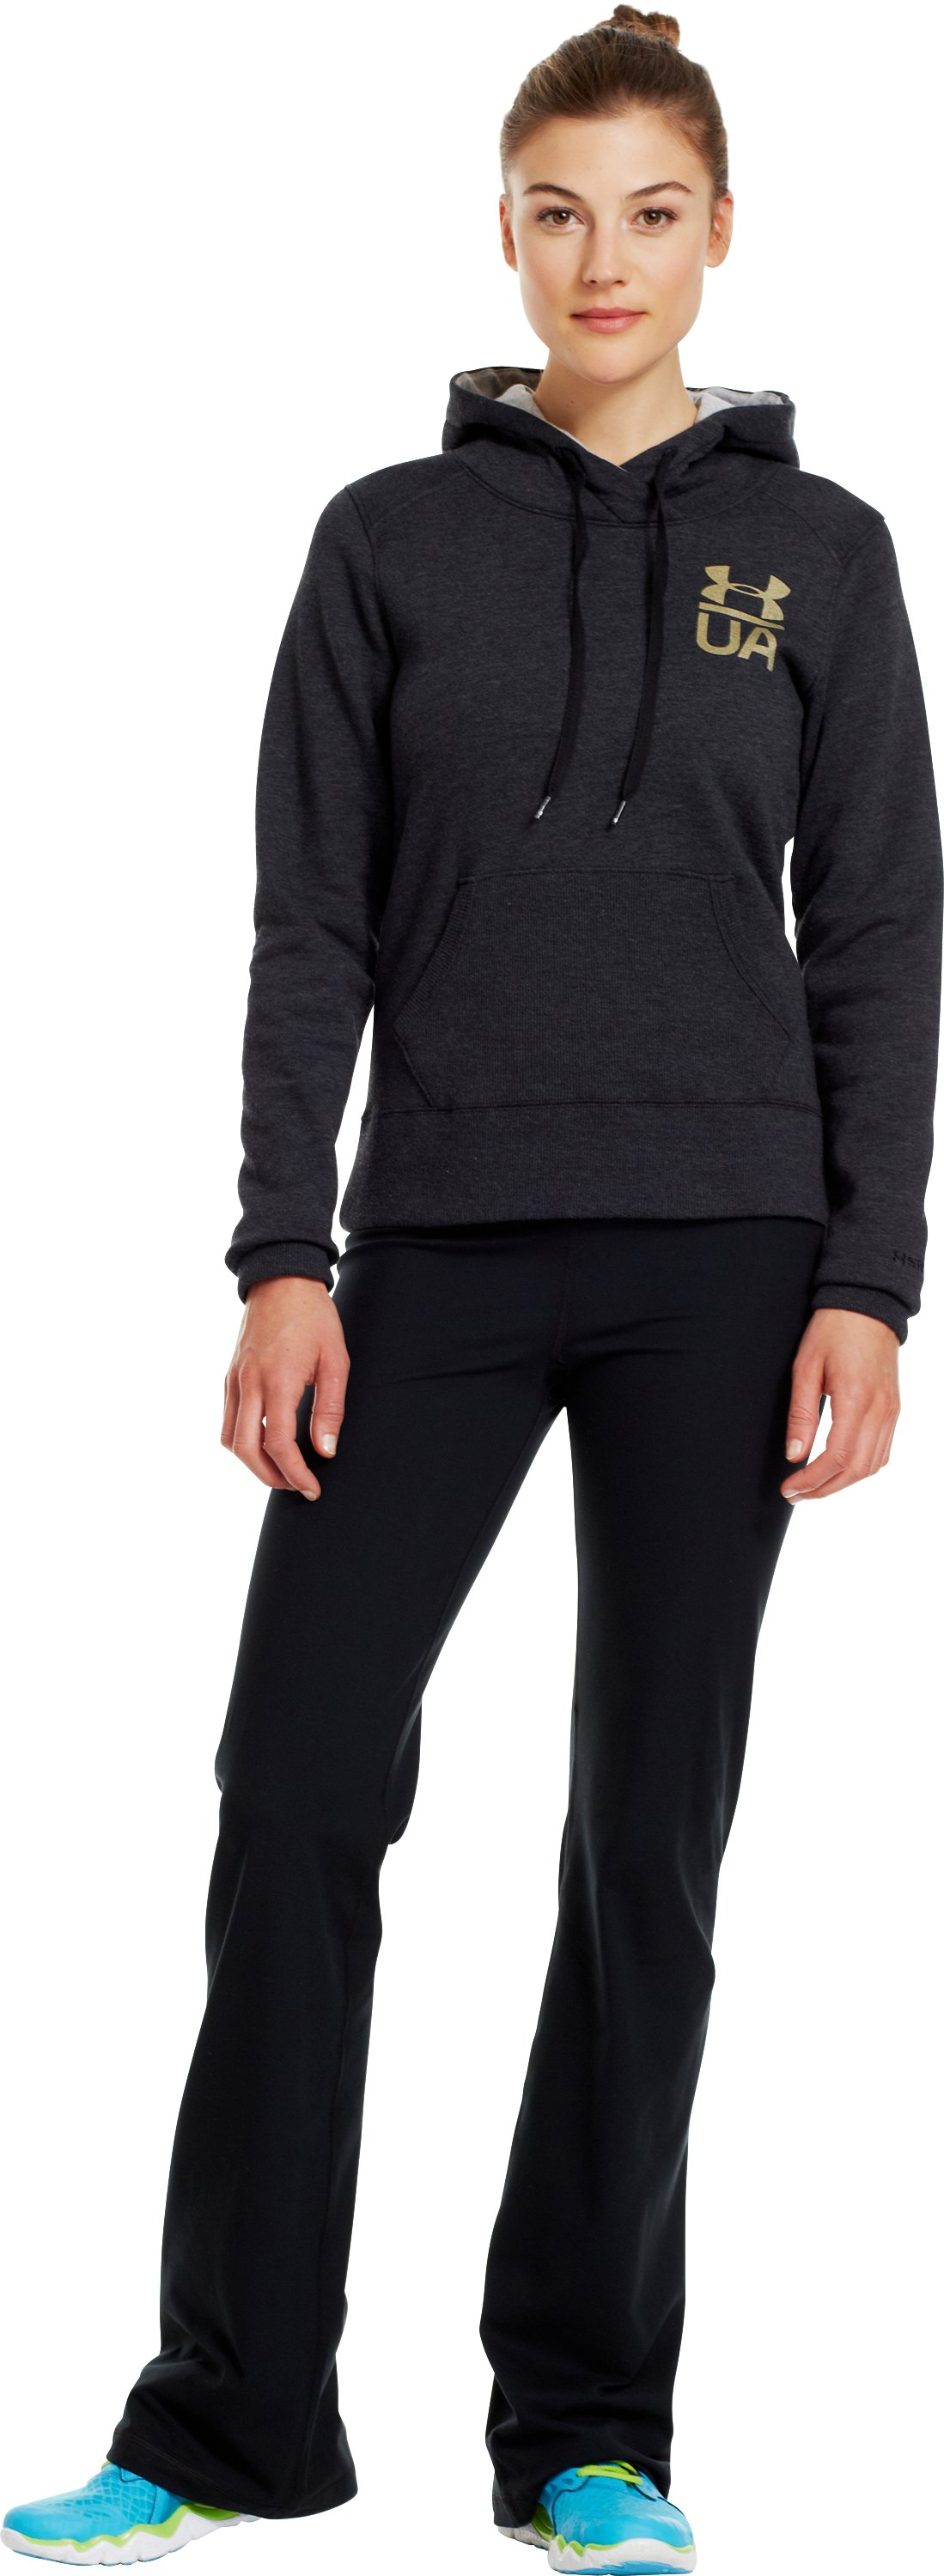 Women's Charged Cotton® Legacy Hoodie, Black , zoomed image